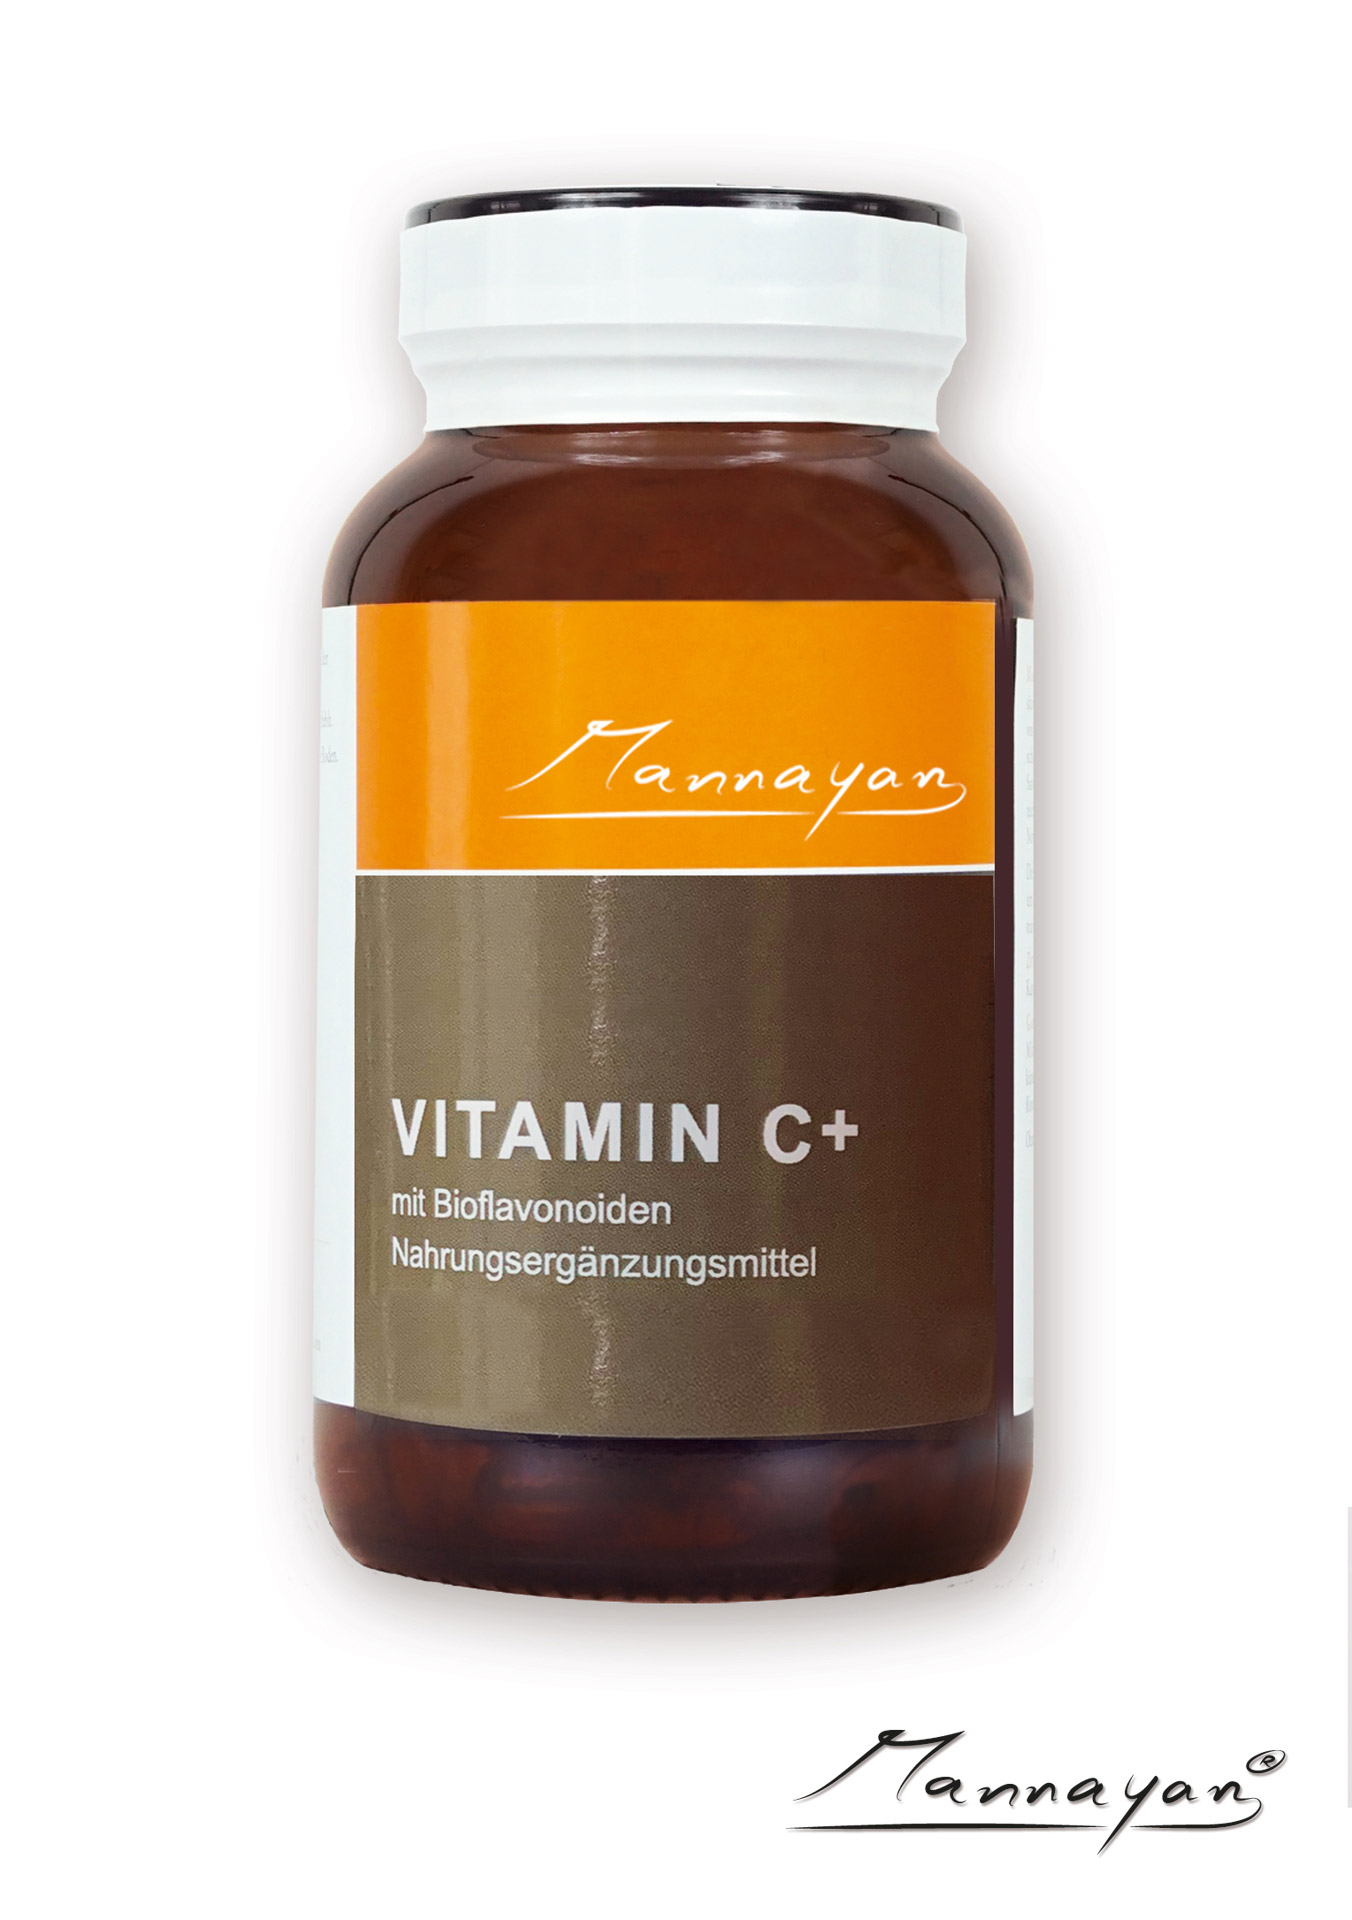 Mannayan VITAMIN C + (120 tablets)